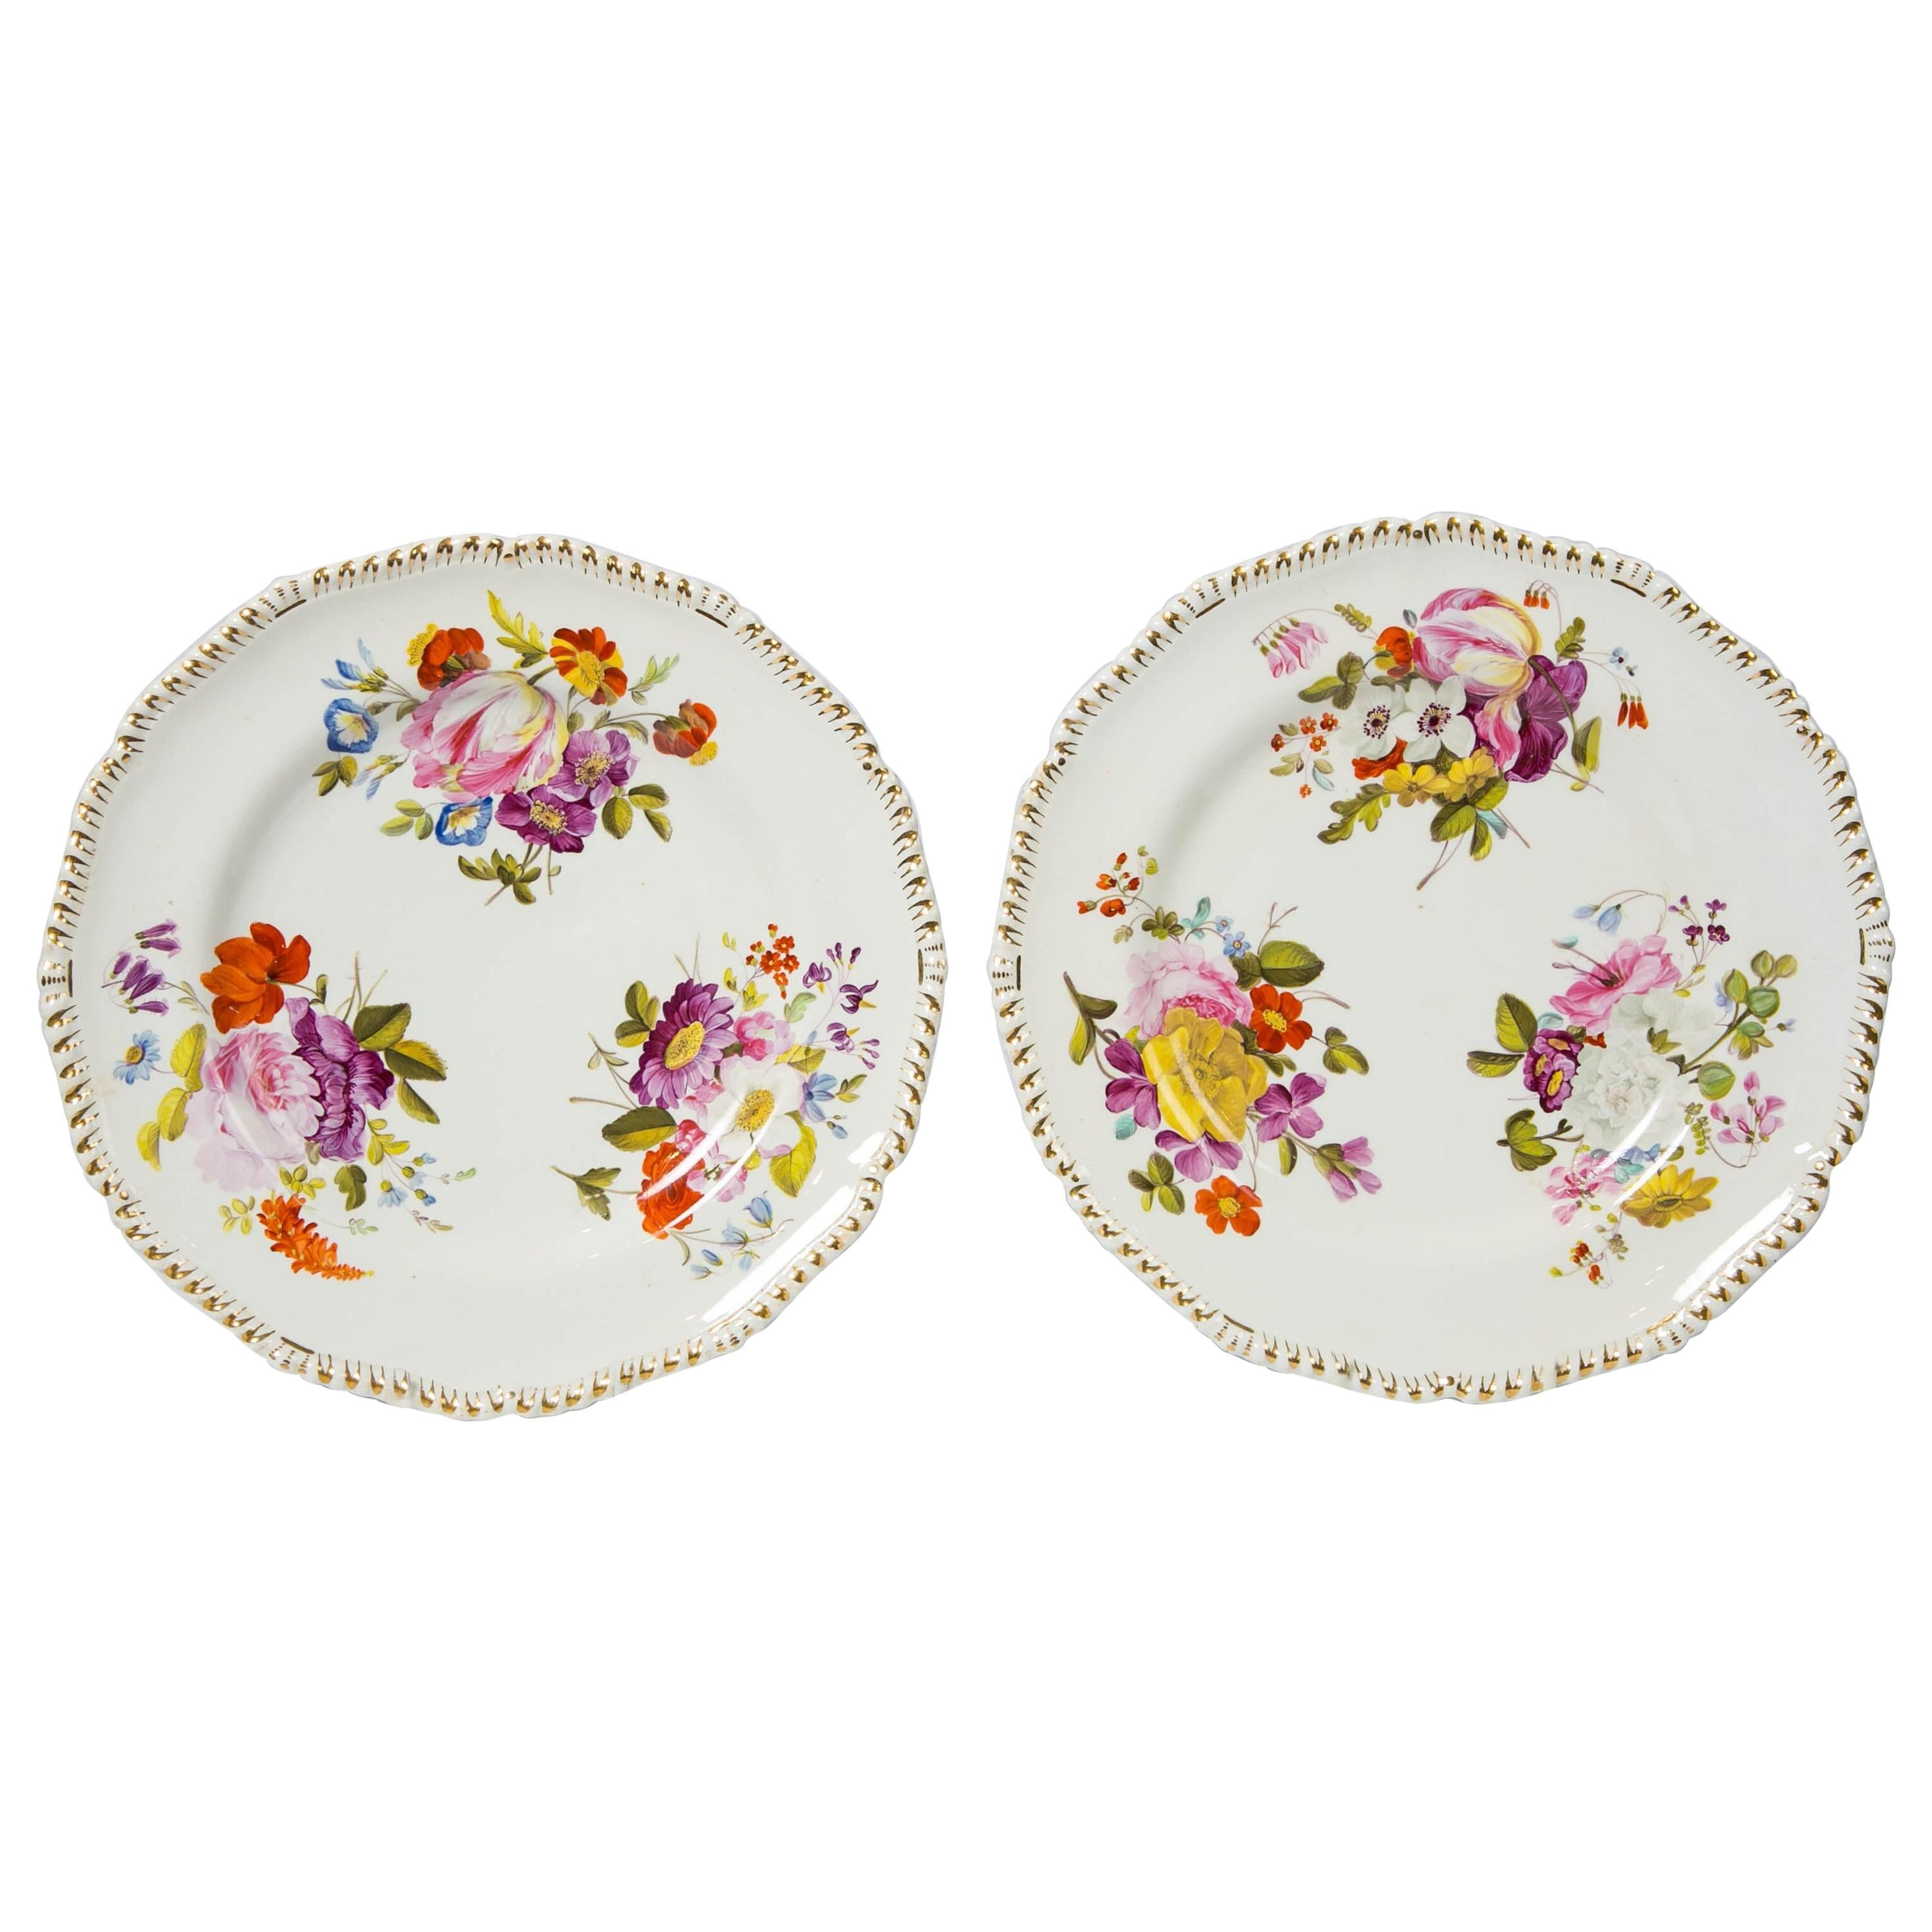 Pair of Antique Derby Dishes with Flowers Made in England, circa 1825